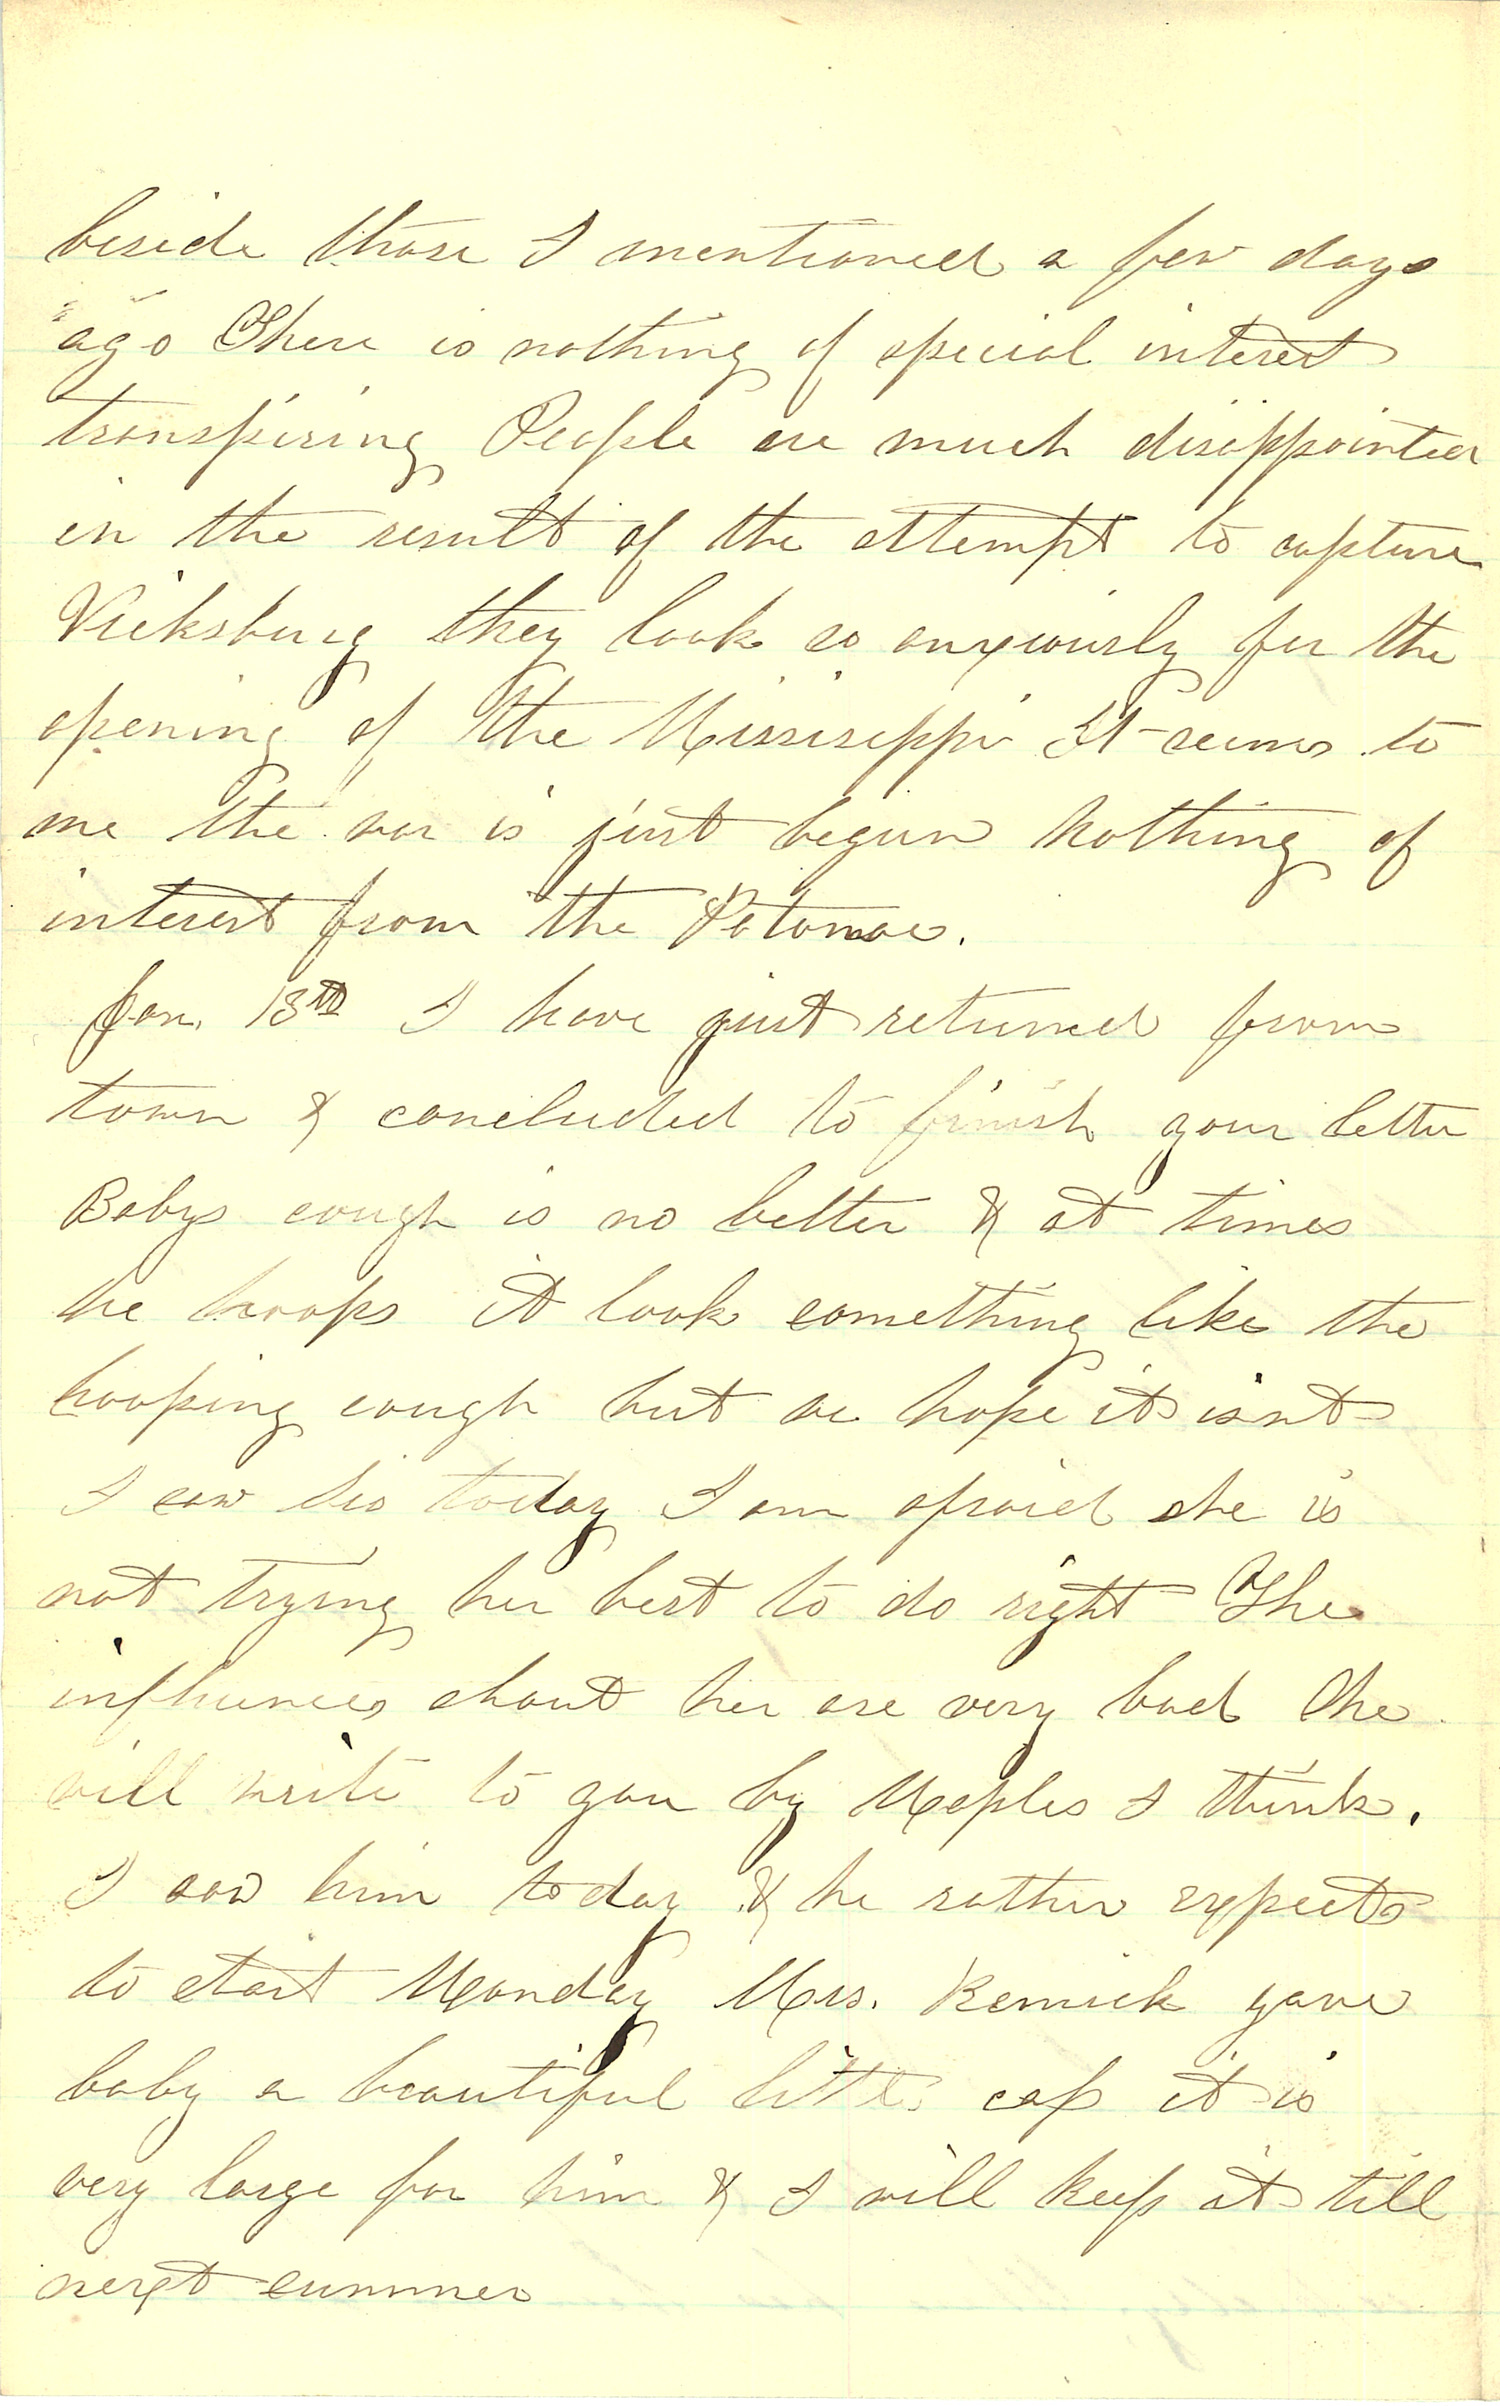 Joseph Culver Letter, January 12, 1863, Letter 2, Page 2